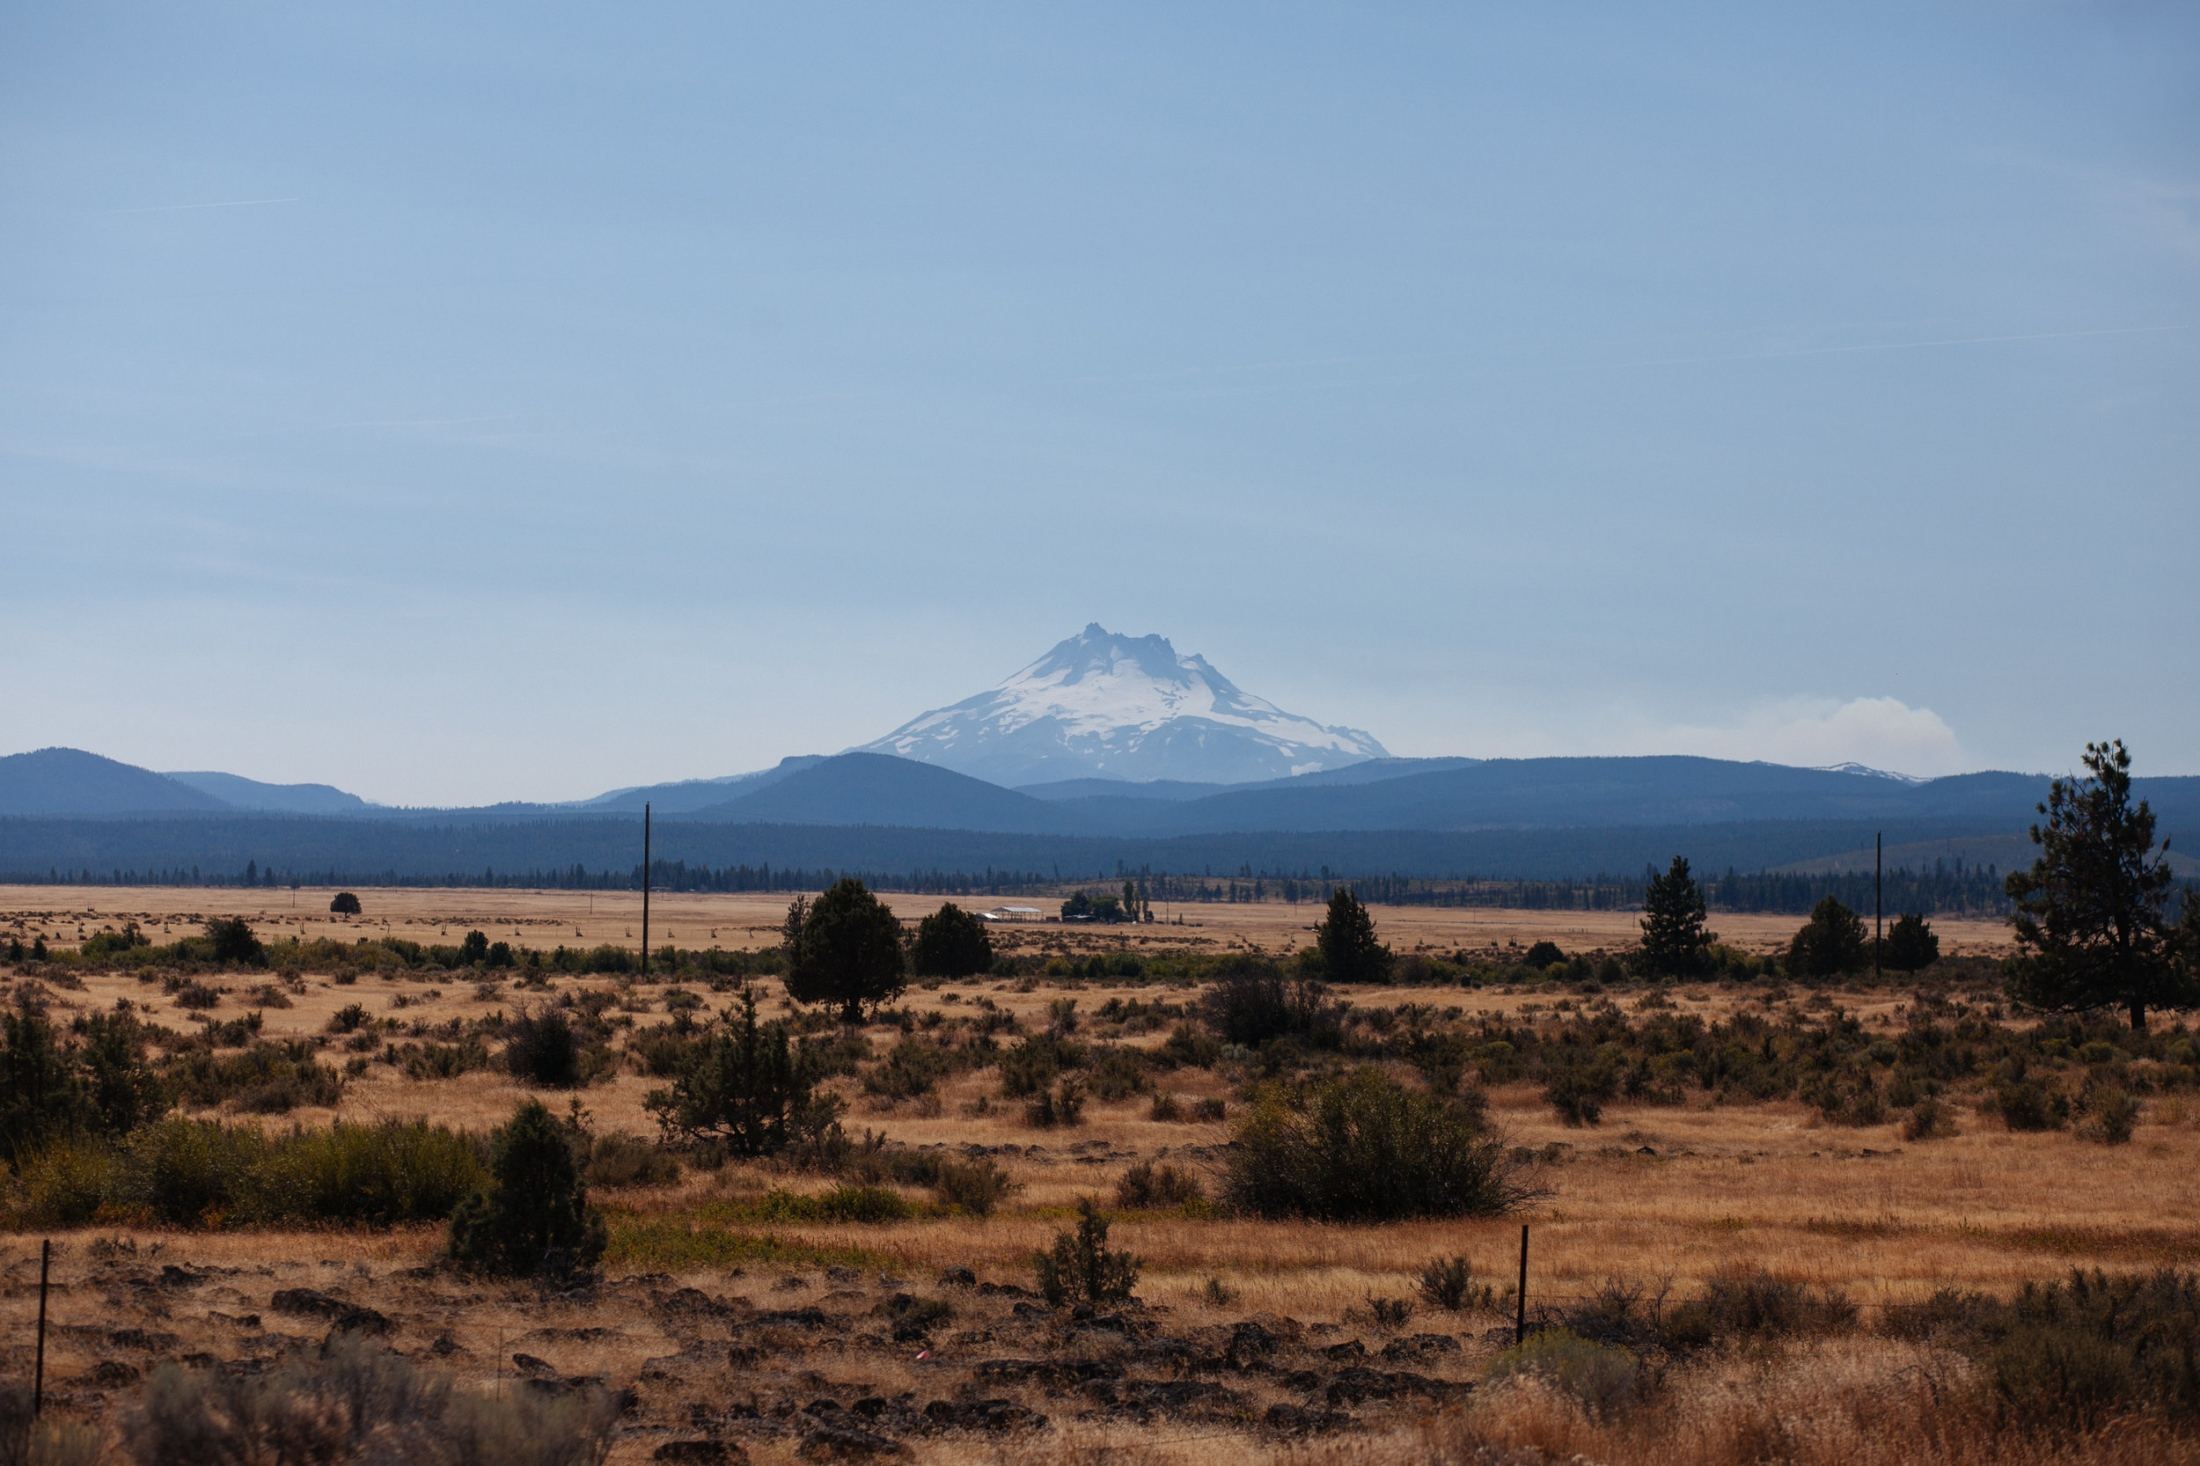 A view of Mount Jefferson behind Warm Springs Reservation, US 26, Oregon; As we drove down US 97 our windows are filled with images of Mt. Hood in the rear view and Mt. Jefferson in my passenger window. The air and clouds had a slight haze to them due to the forests burning in the distance. With only a couple of miles left between us and the flames we made our way down to Bend, Oregon.